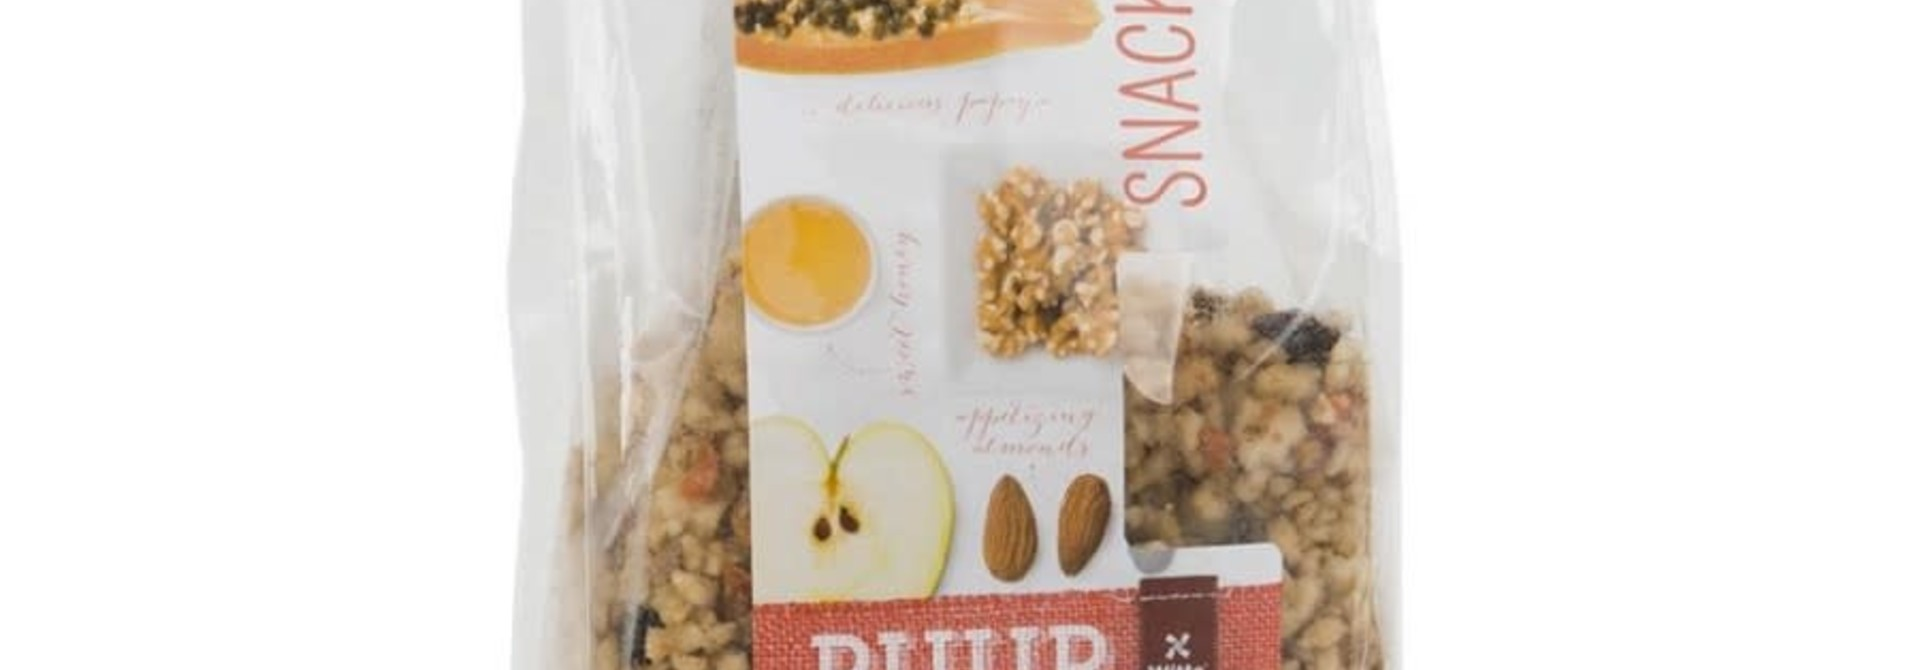 Fruit & Nuts Crumble 200gr